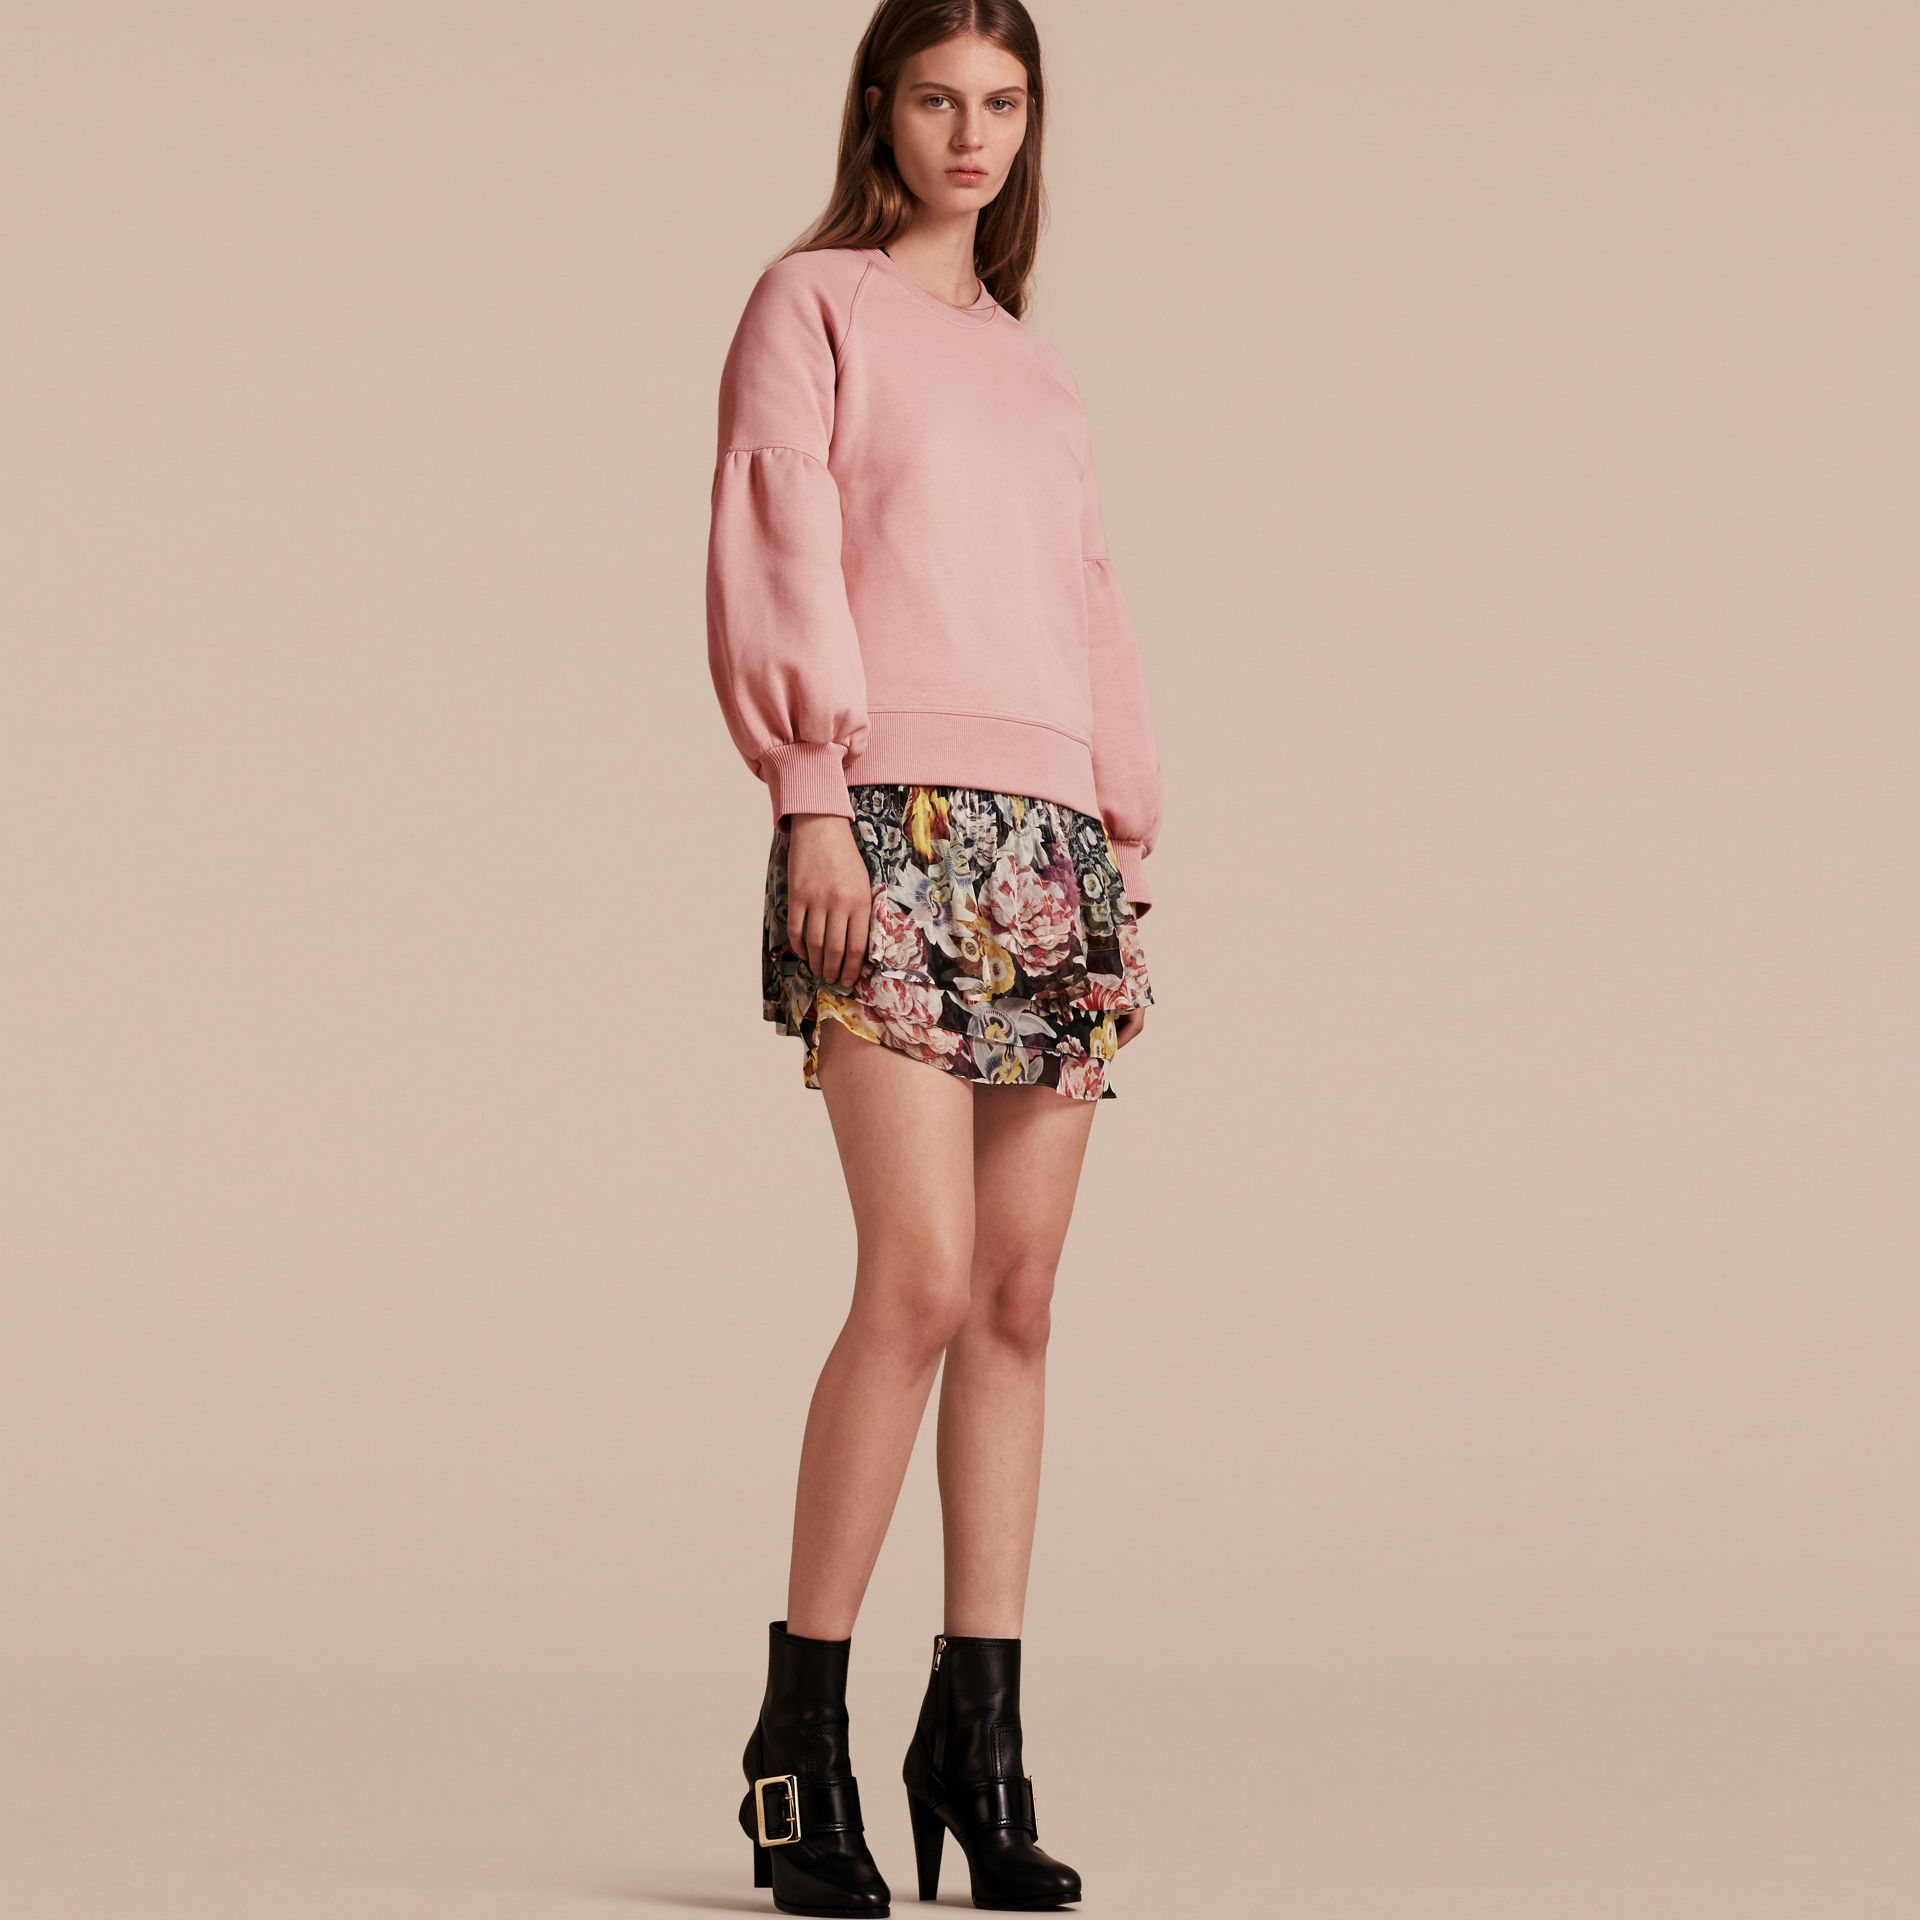 Ash rose Brushed-back Jersey Sweatshirt with Bell Sleeves Ash Rose - gallery image 1